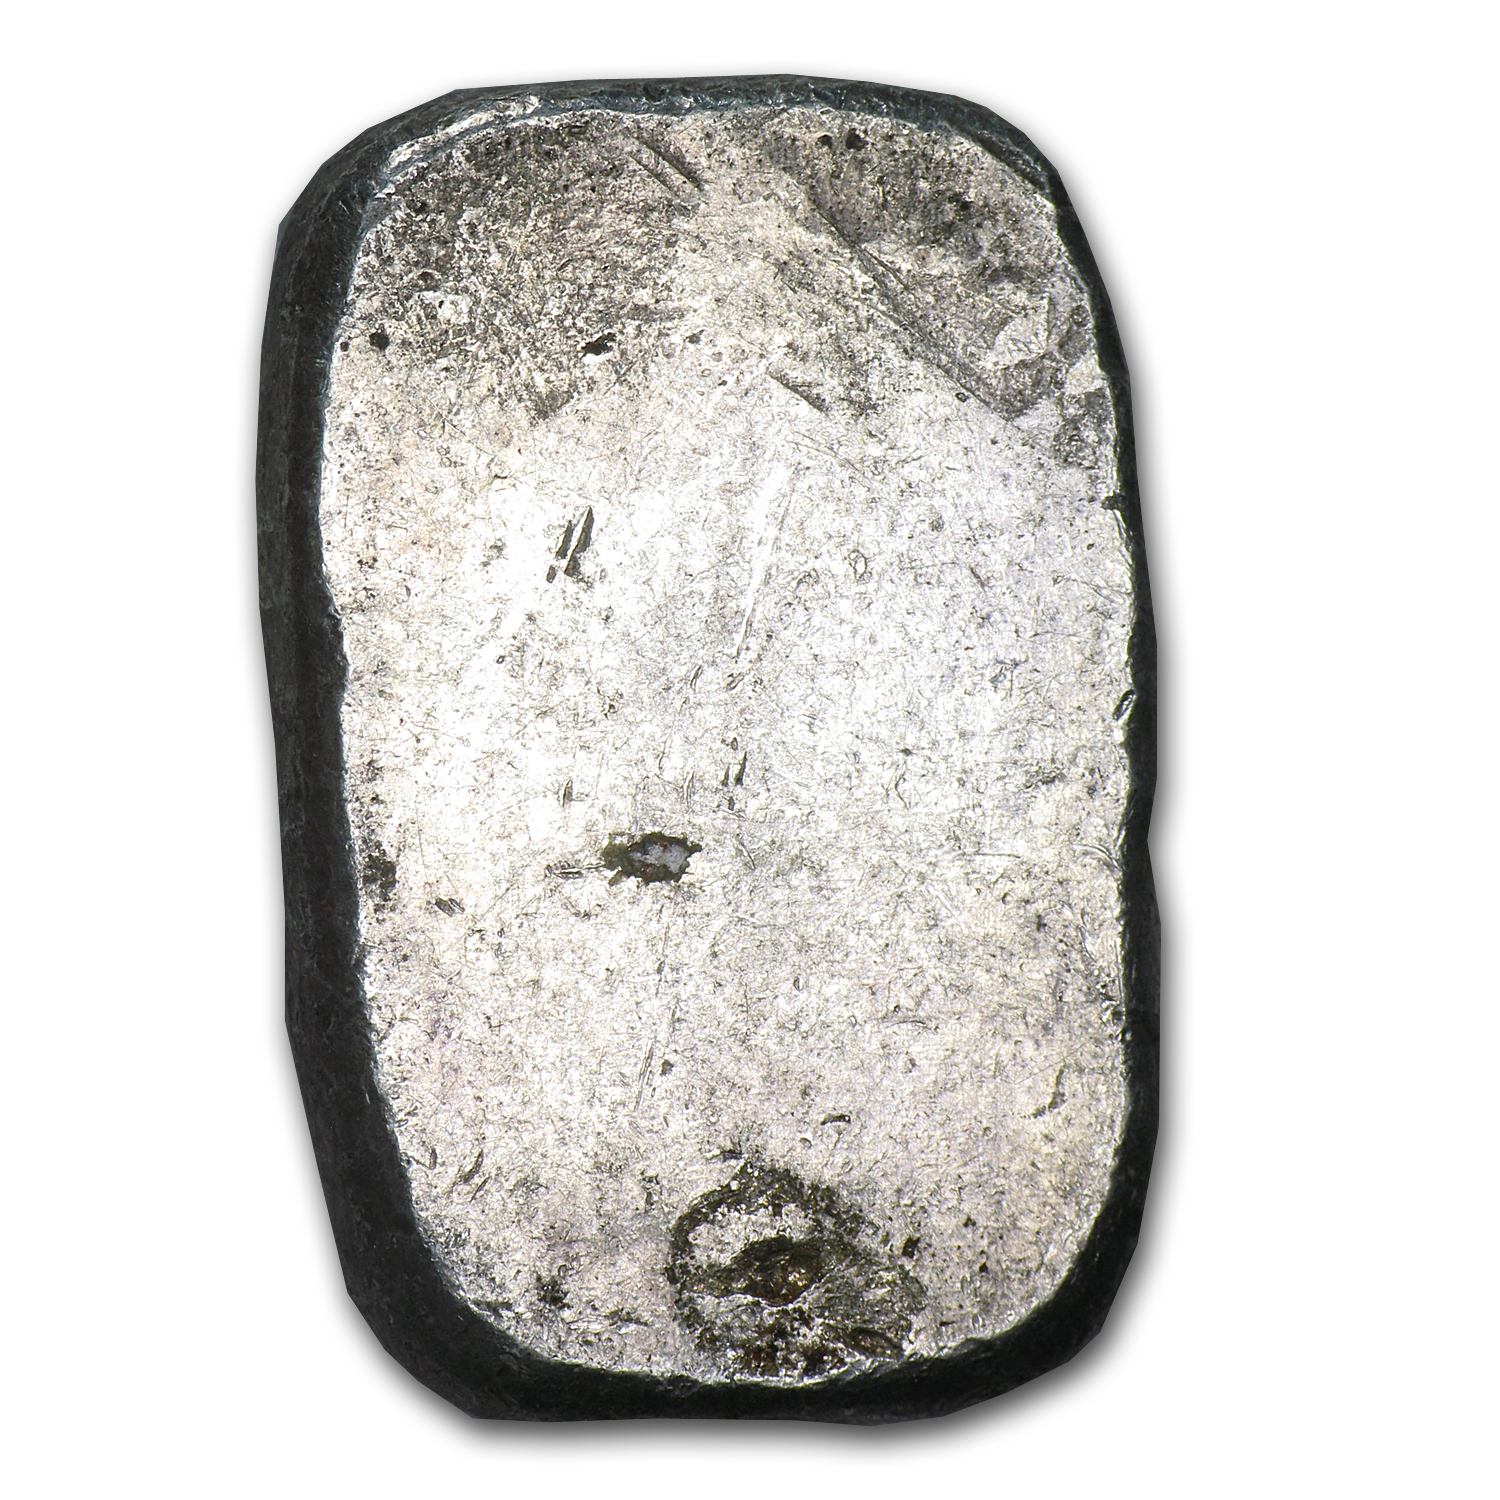 1 oz Silver Bars - Old Norse Viking Ingot Bar